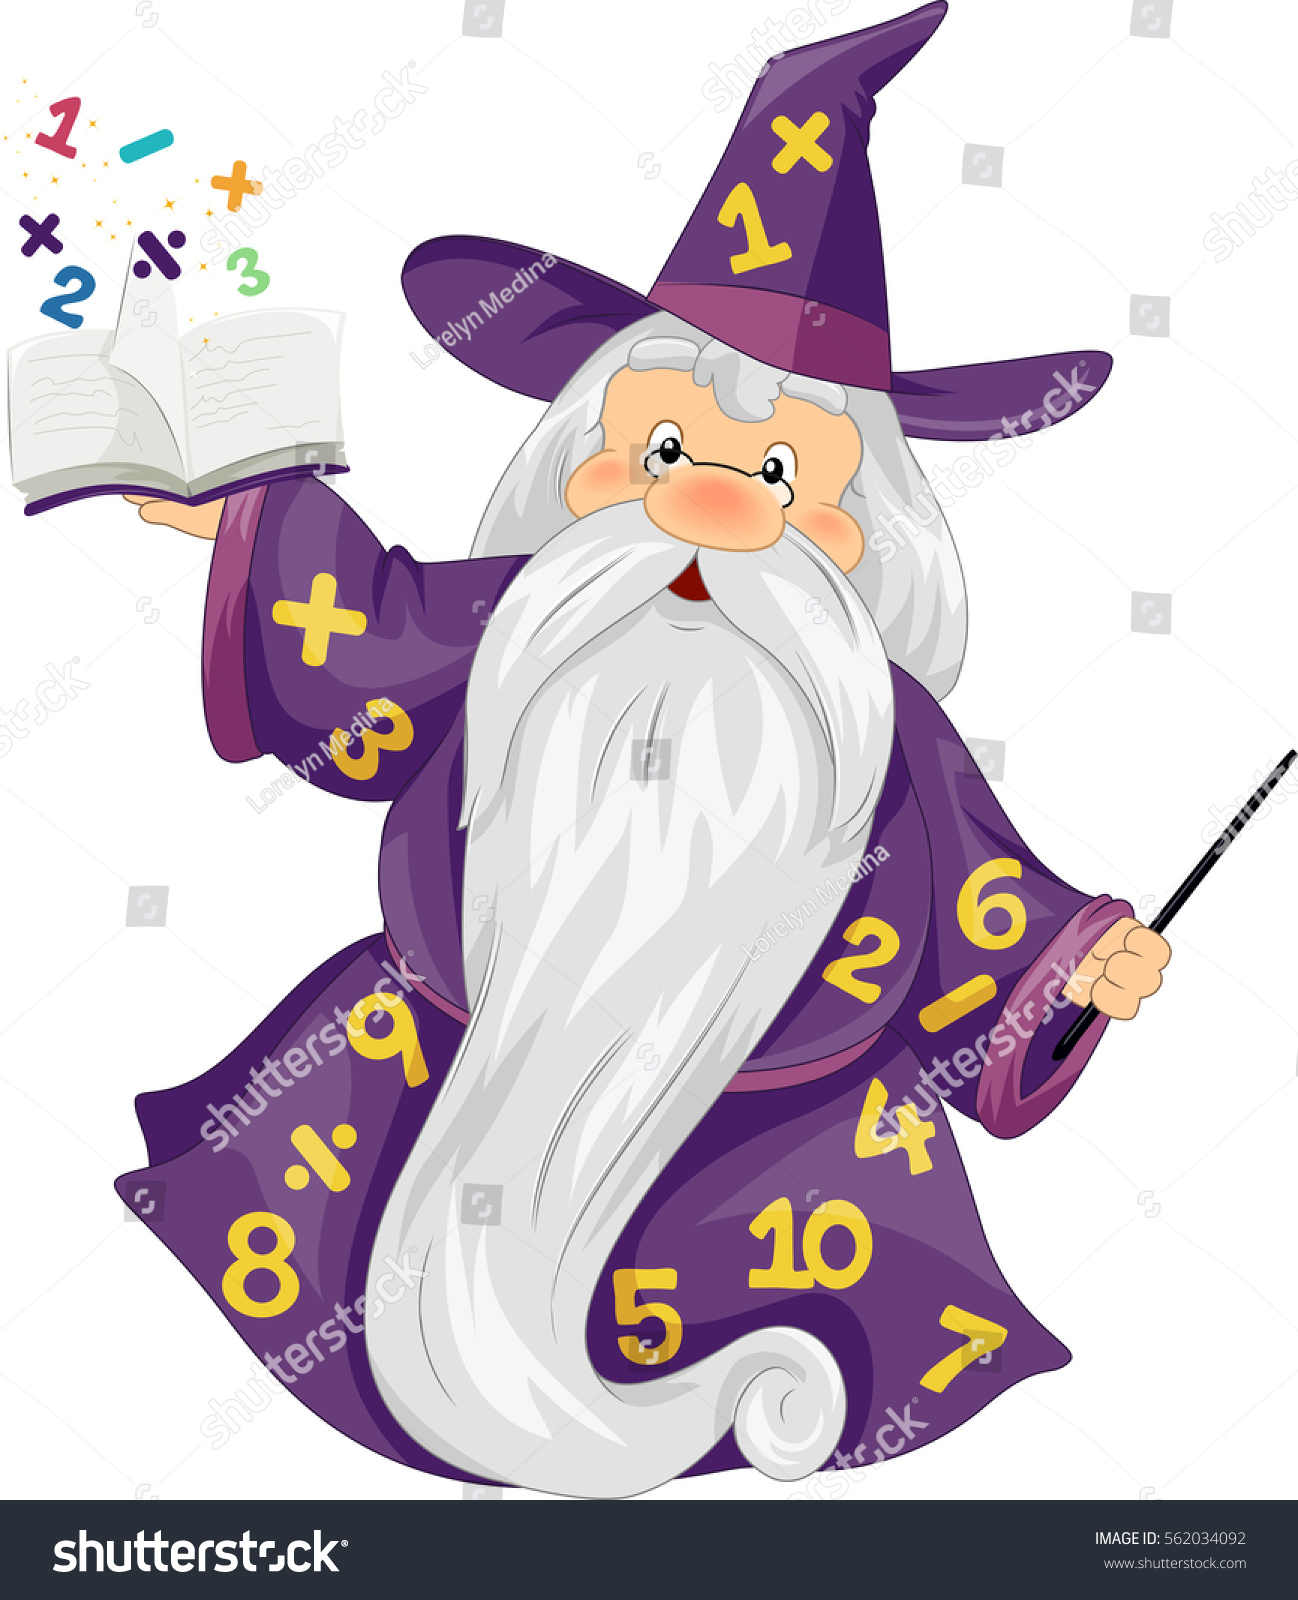 Illustration Of An Elderly Man Dressed As A Wizard Holding Magical Book With Numbers Popping